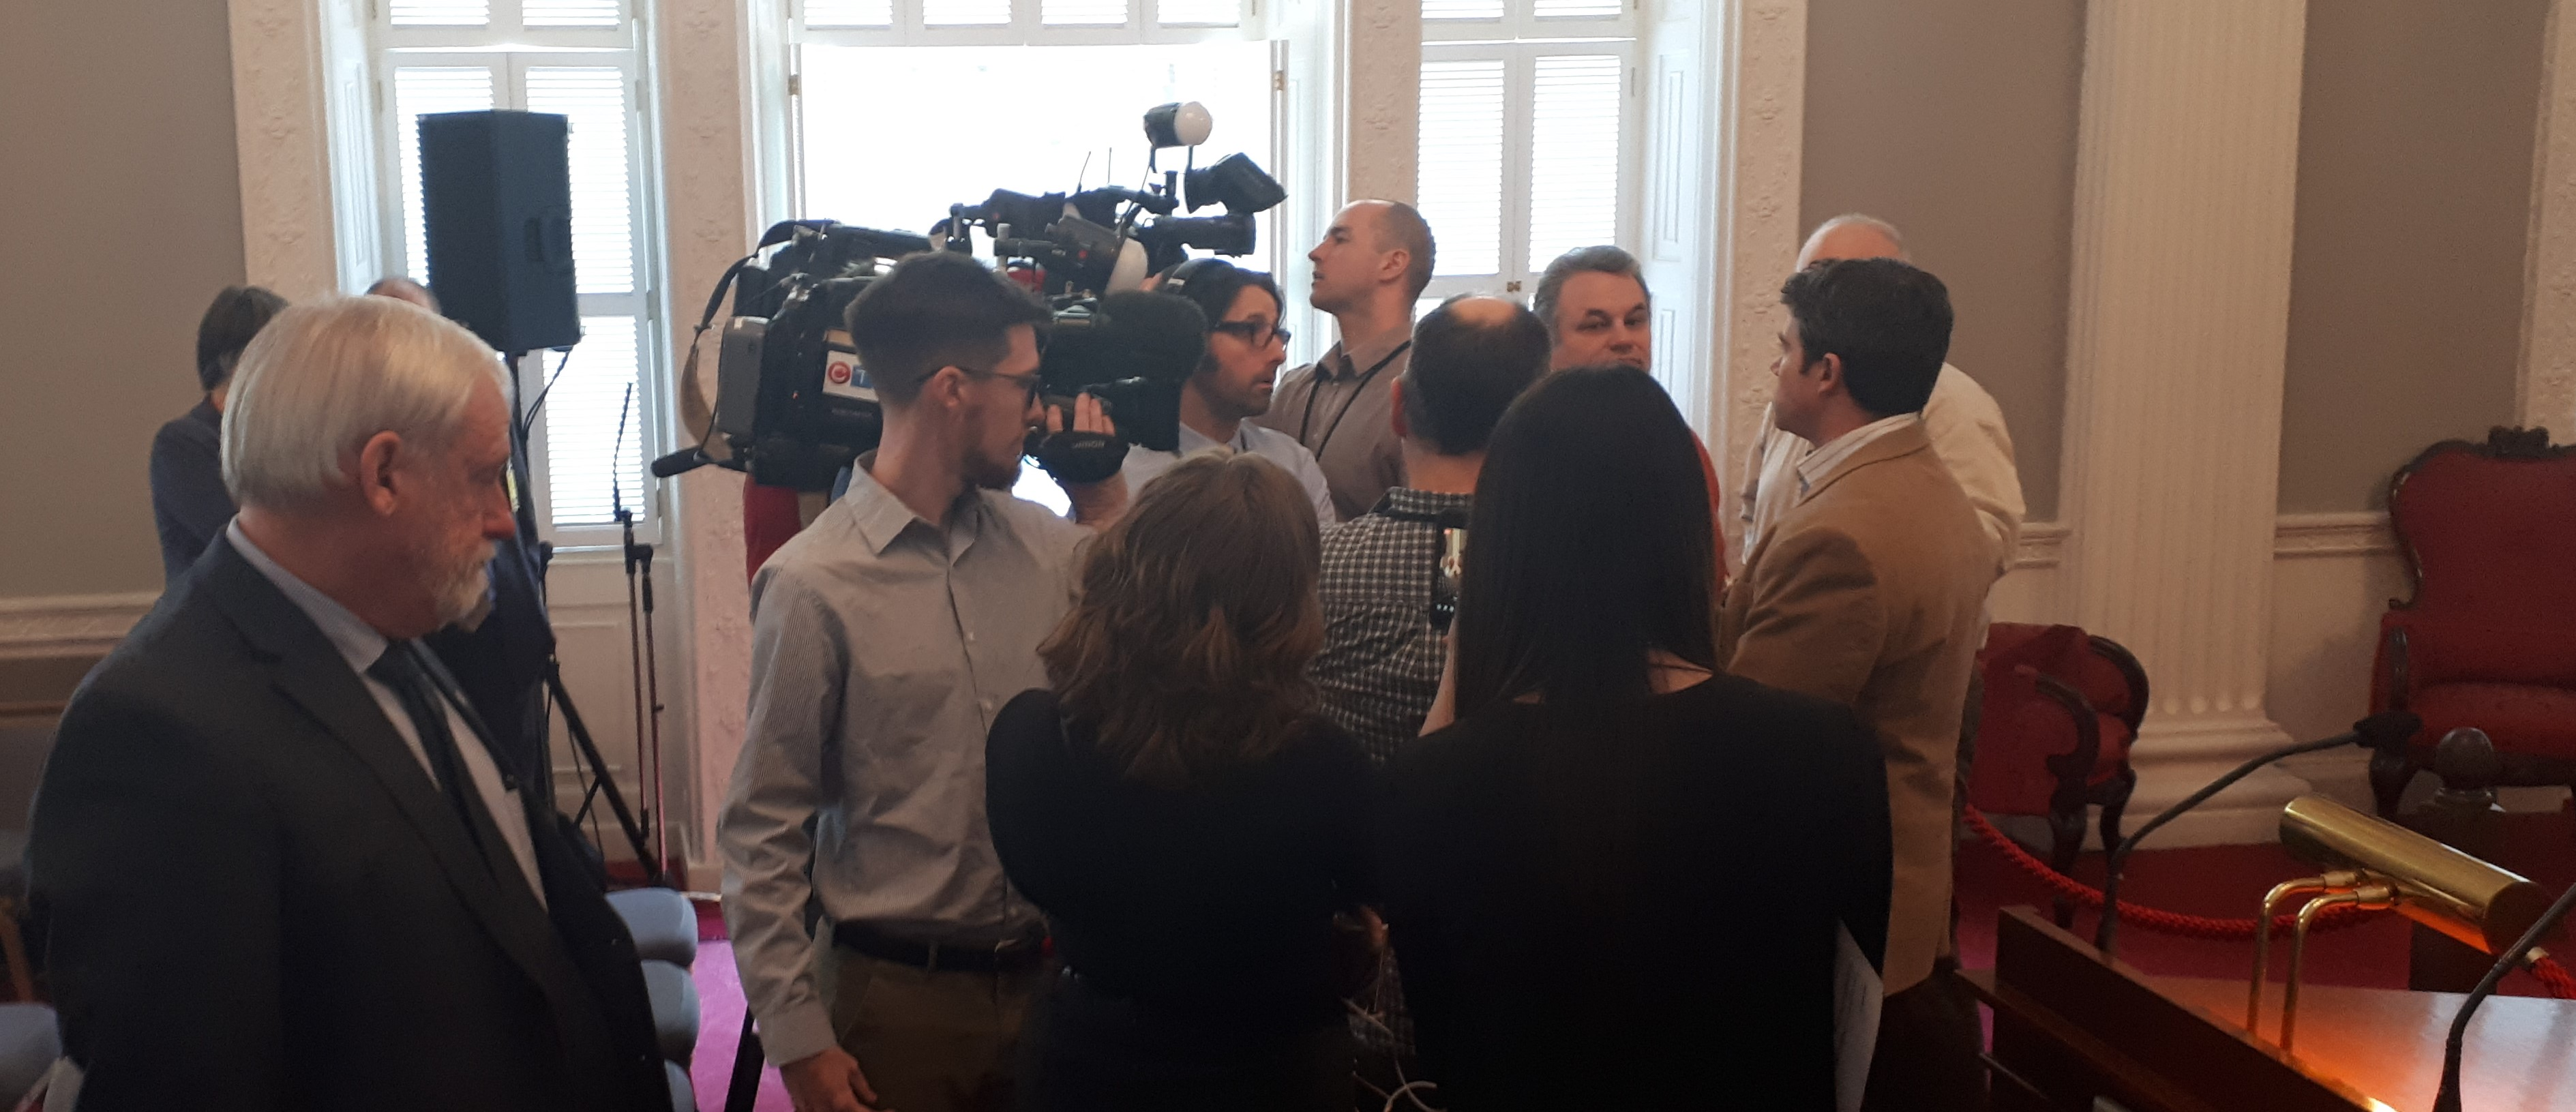 Craig Smith from NCC enters the scrum I just left, March 14, 2019.